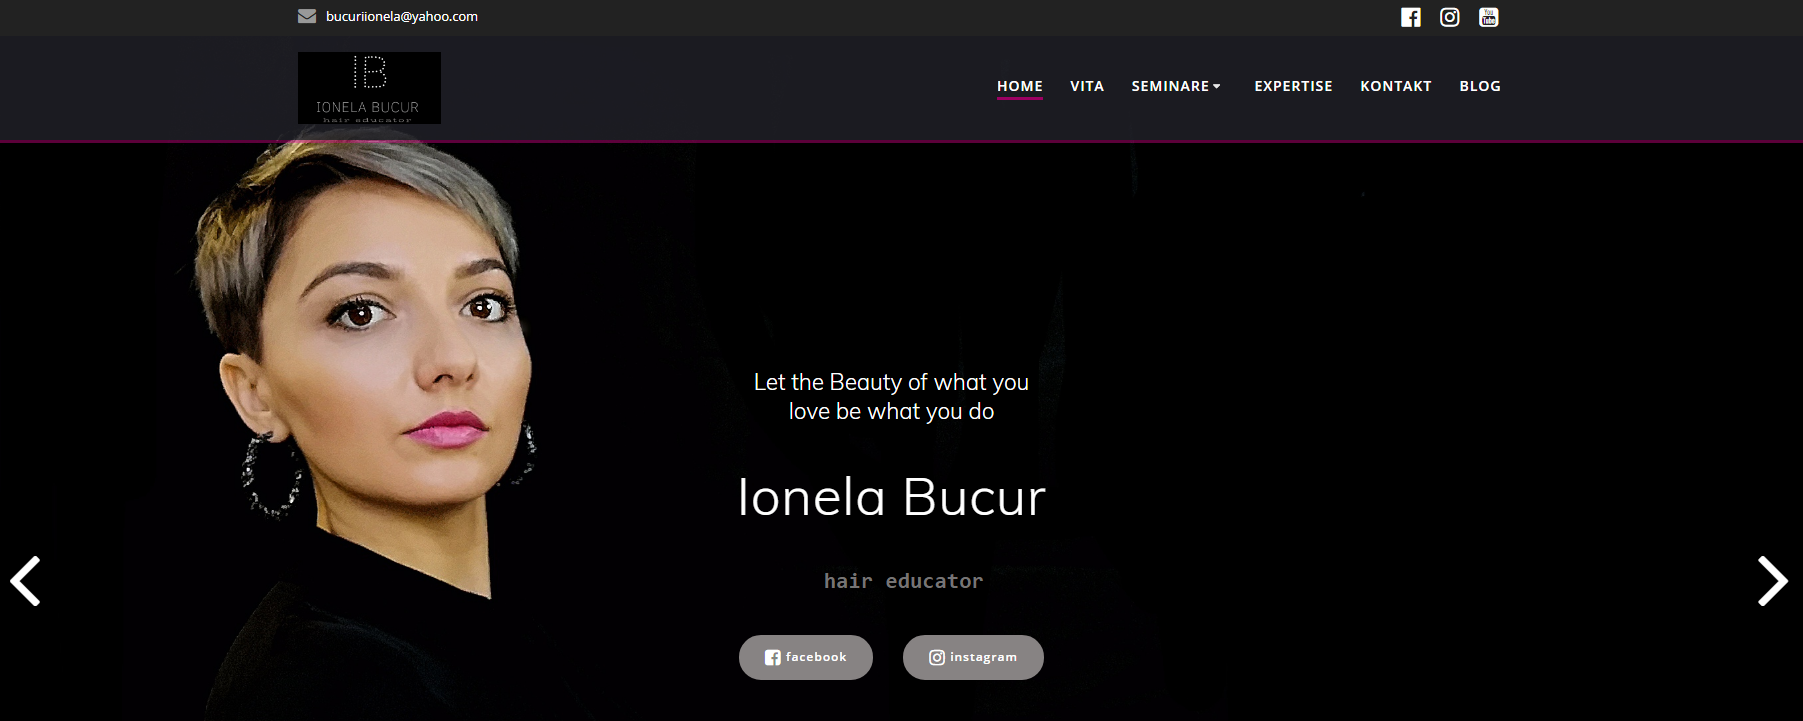 Friseur Coach - Christian Funk - Website Ionela